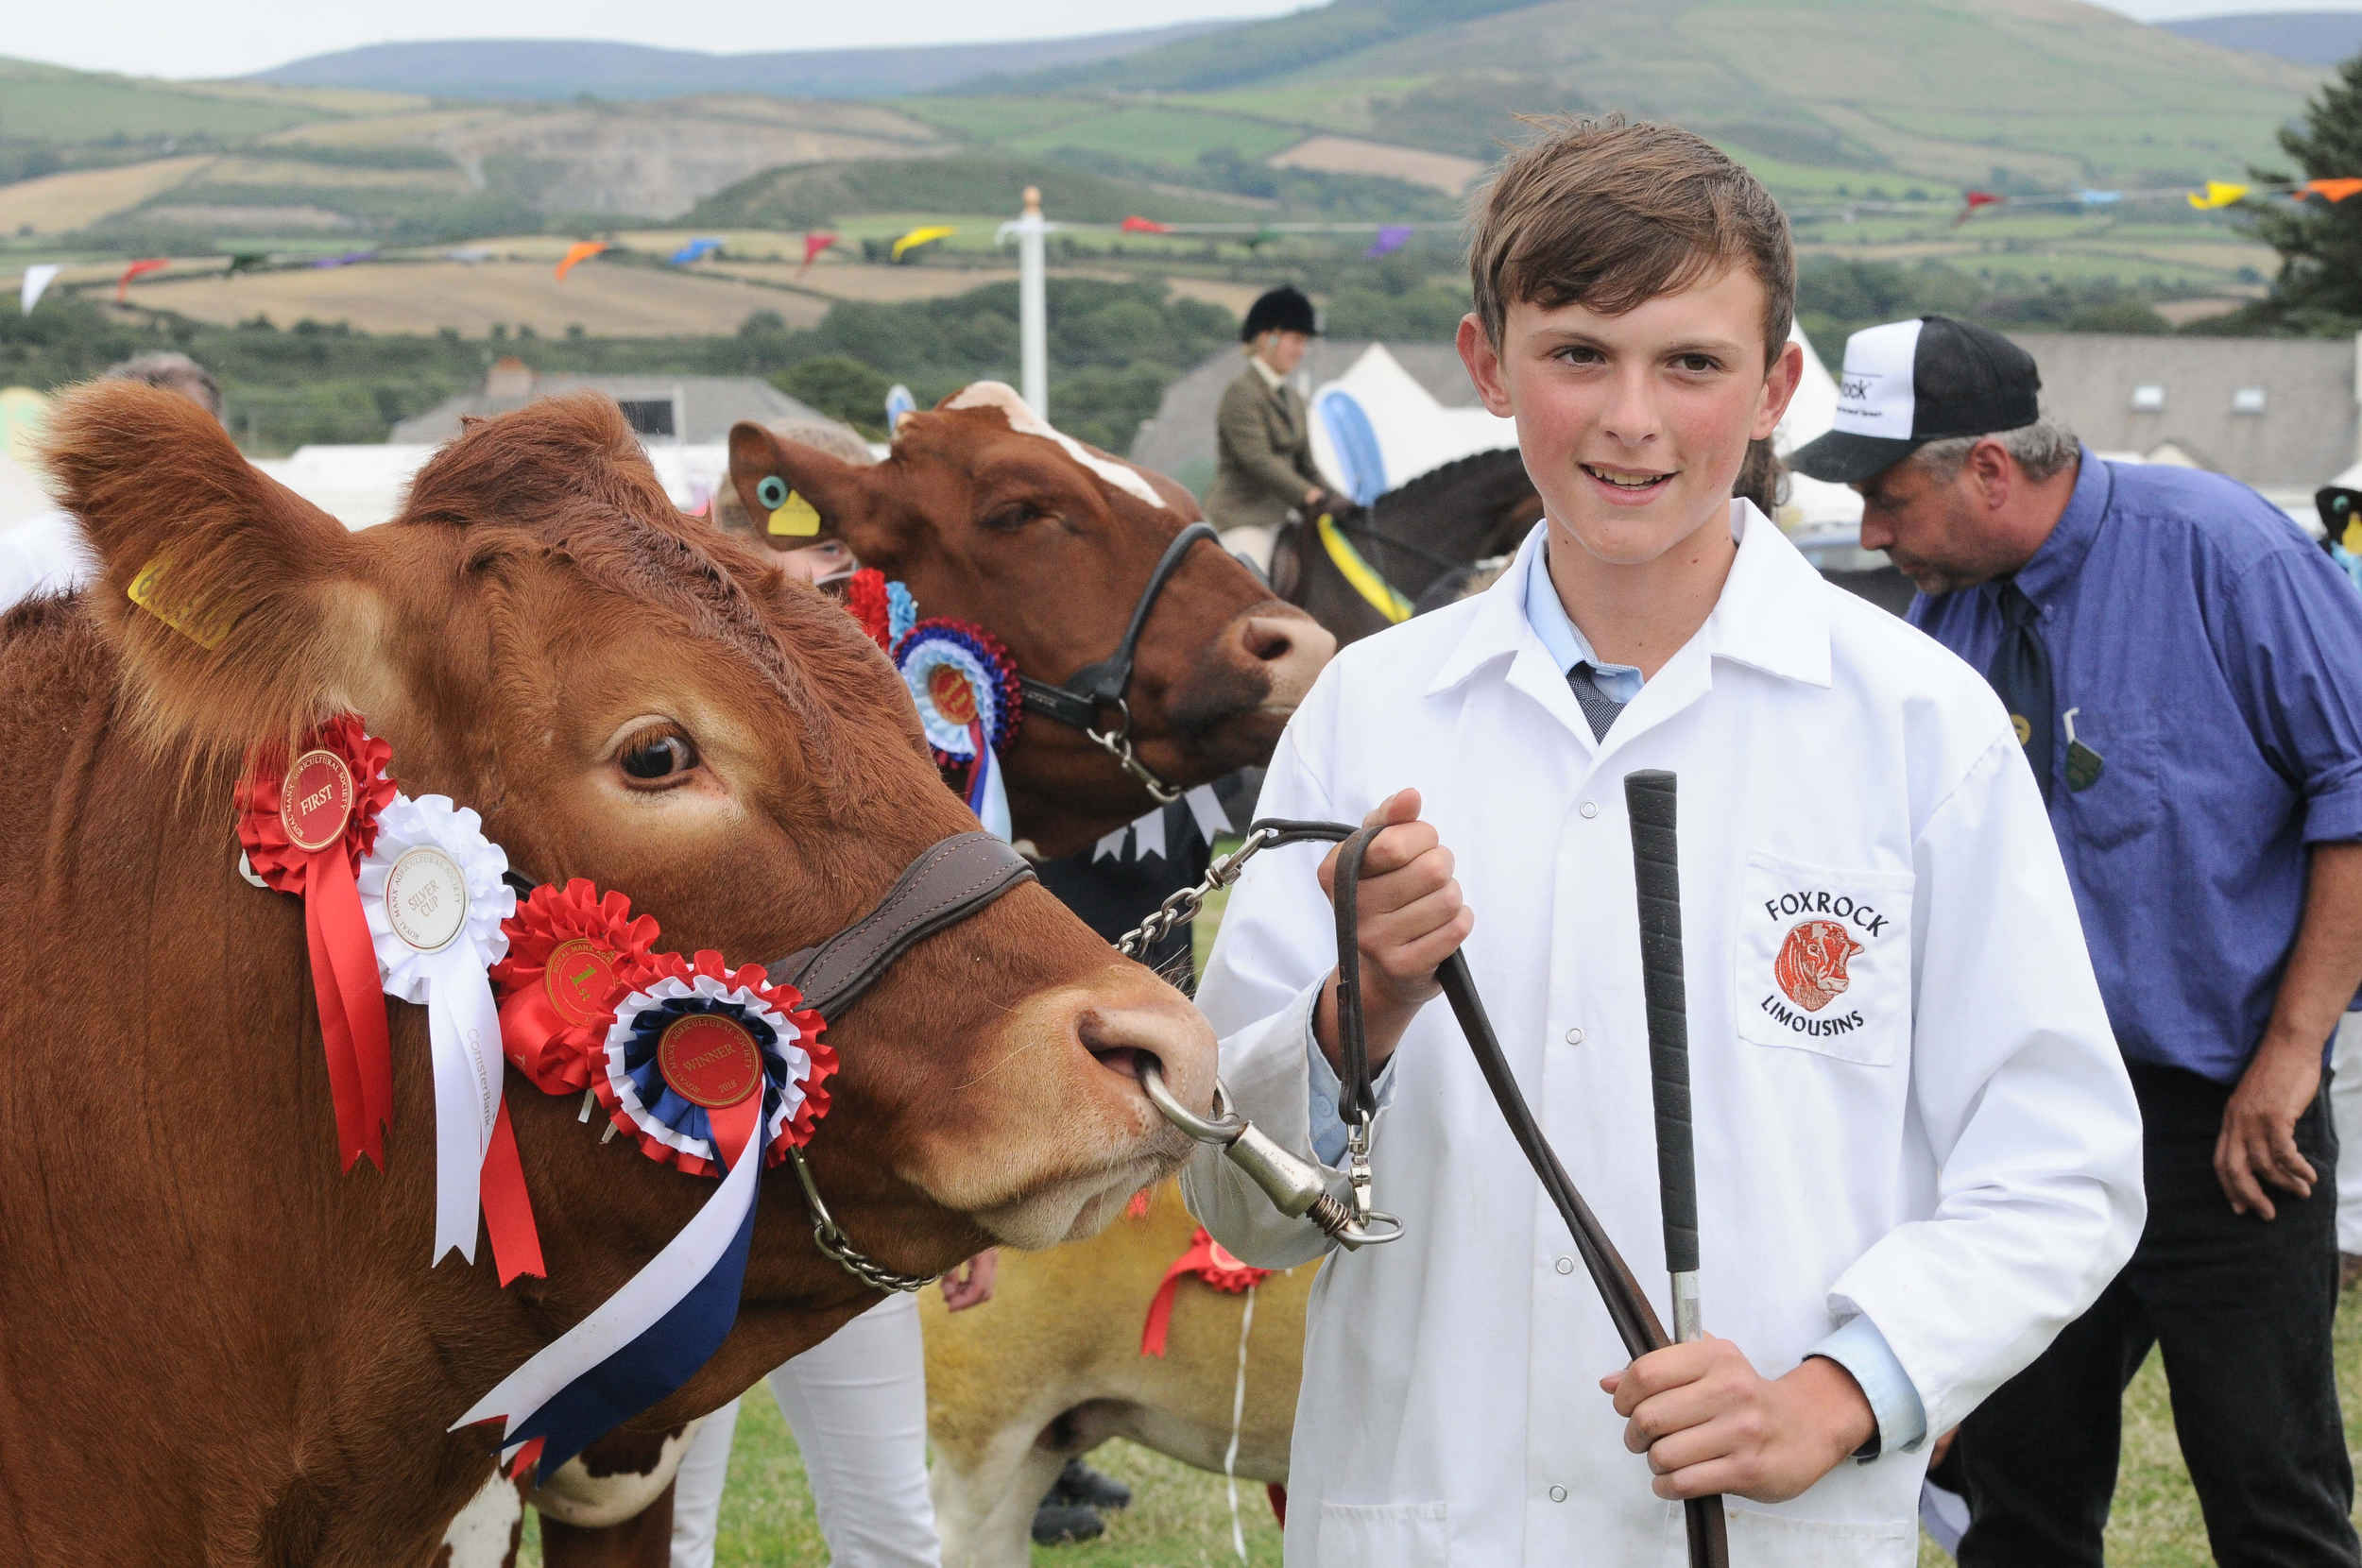 Tom Cain with Supreme Champion Limousin 'Foxrock Molly' at the 2018 Royal Manx Agricultural Show